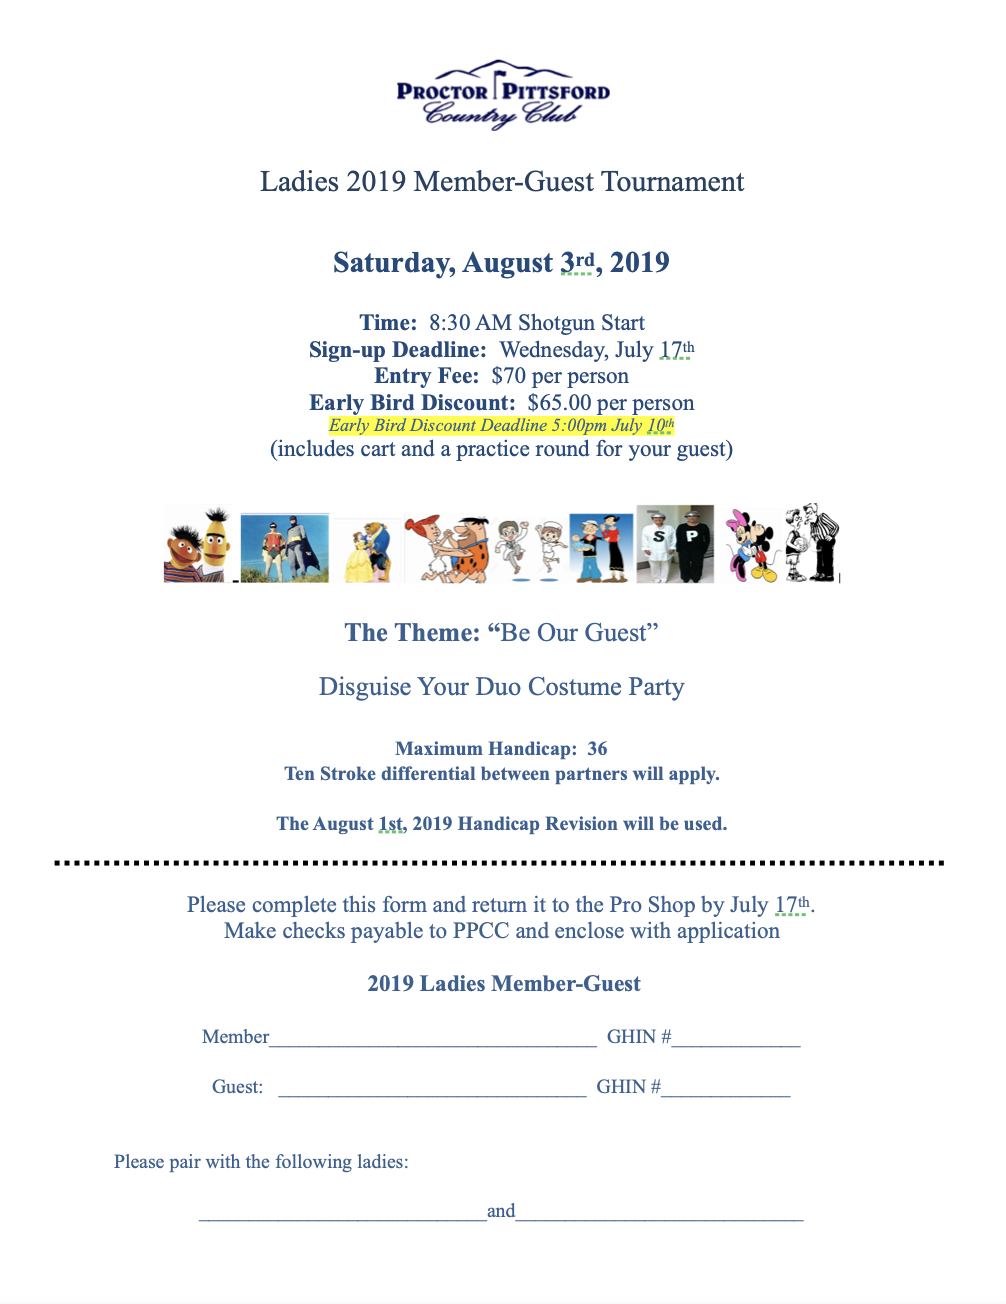 ladies-2019-member-guest-application